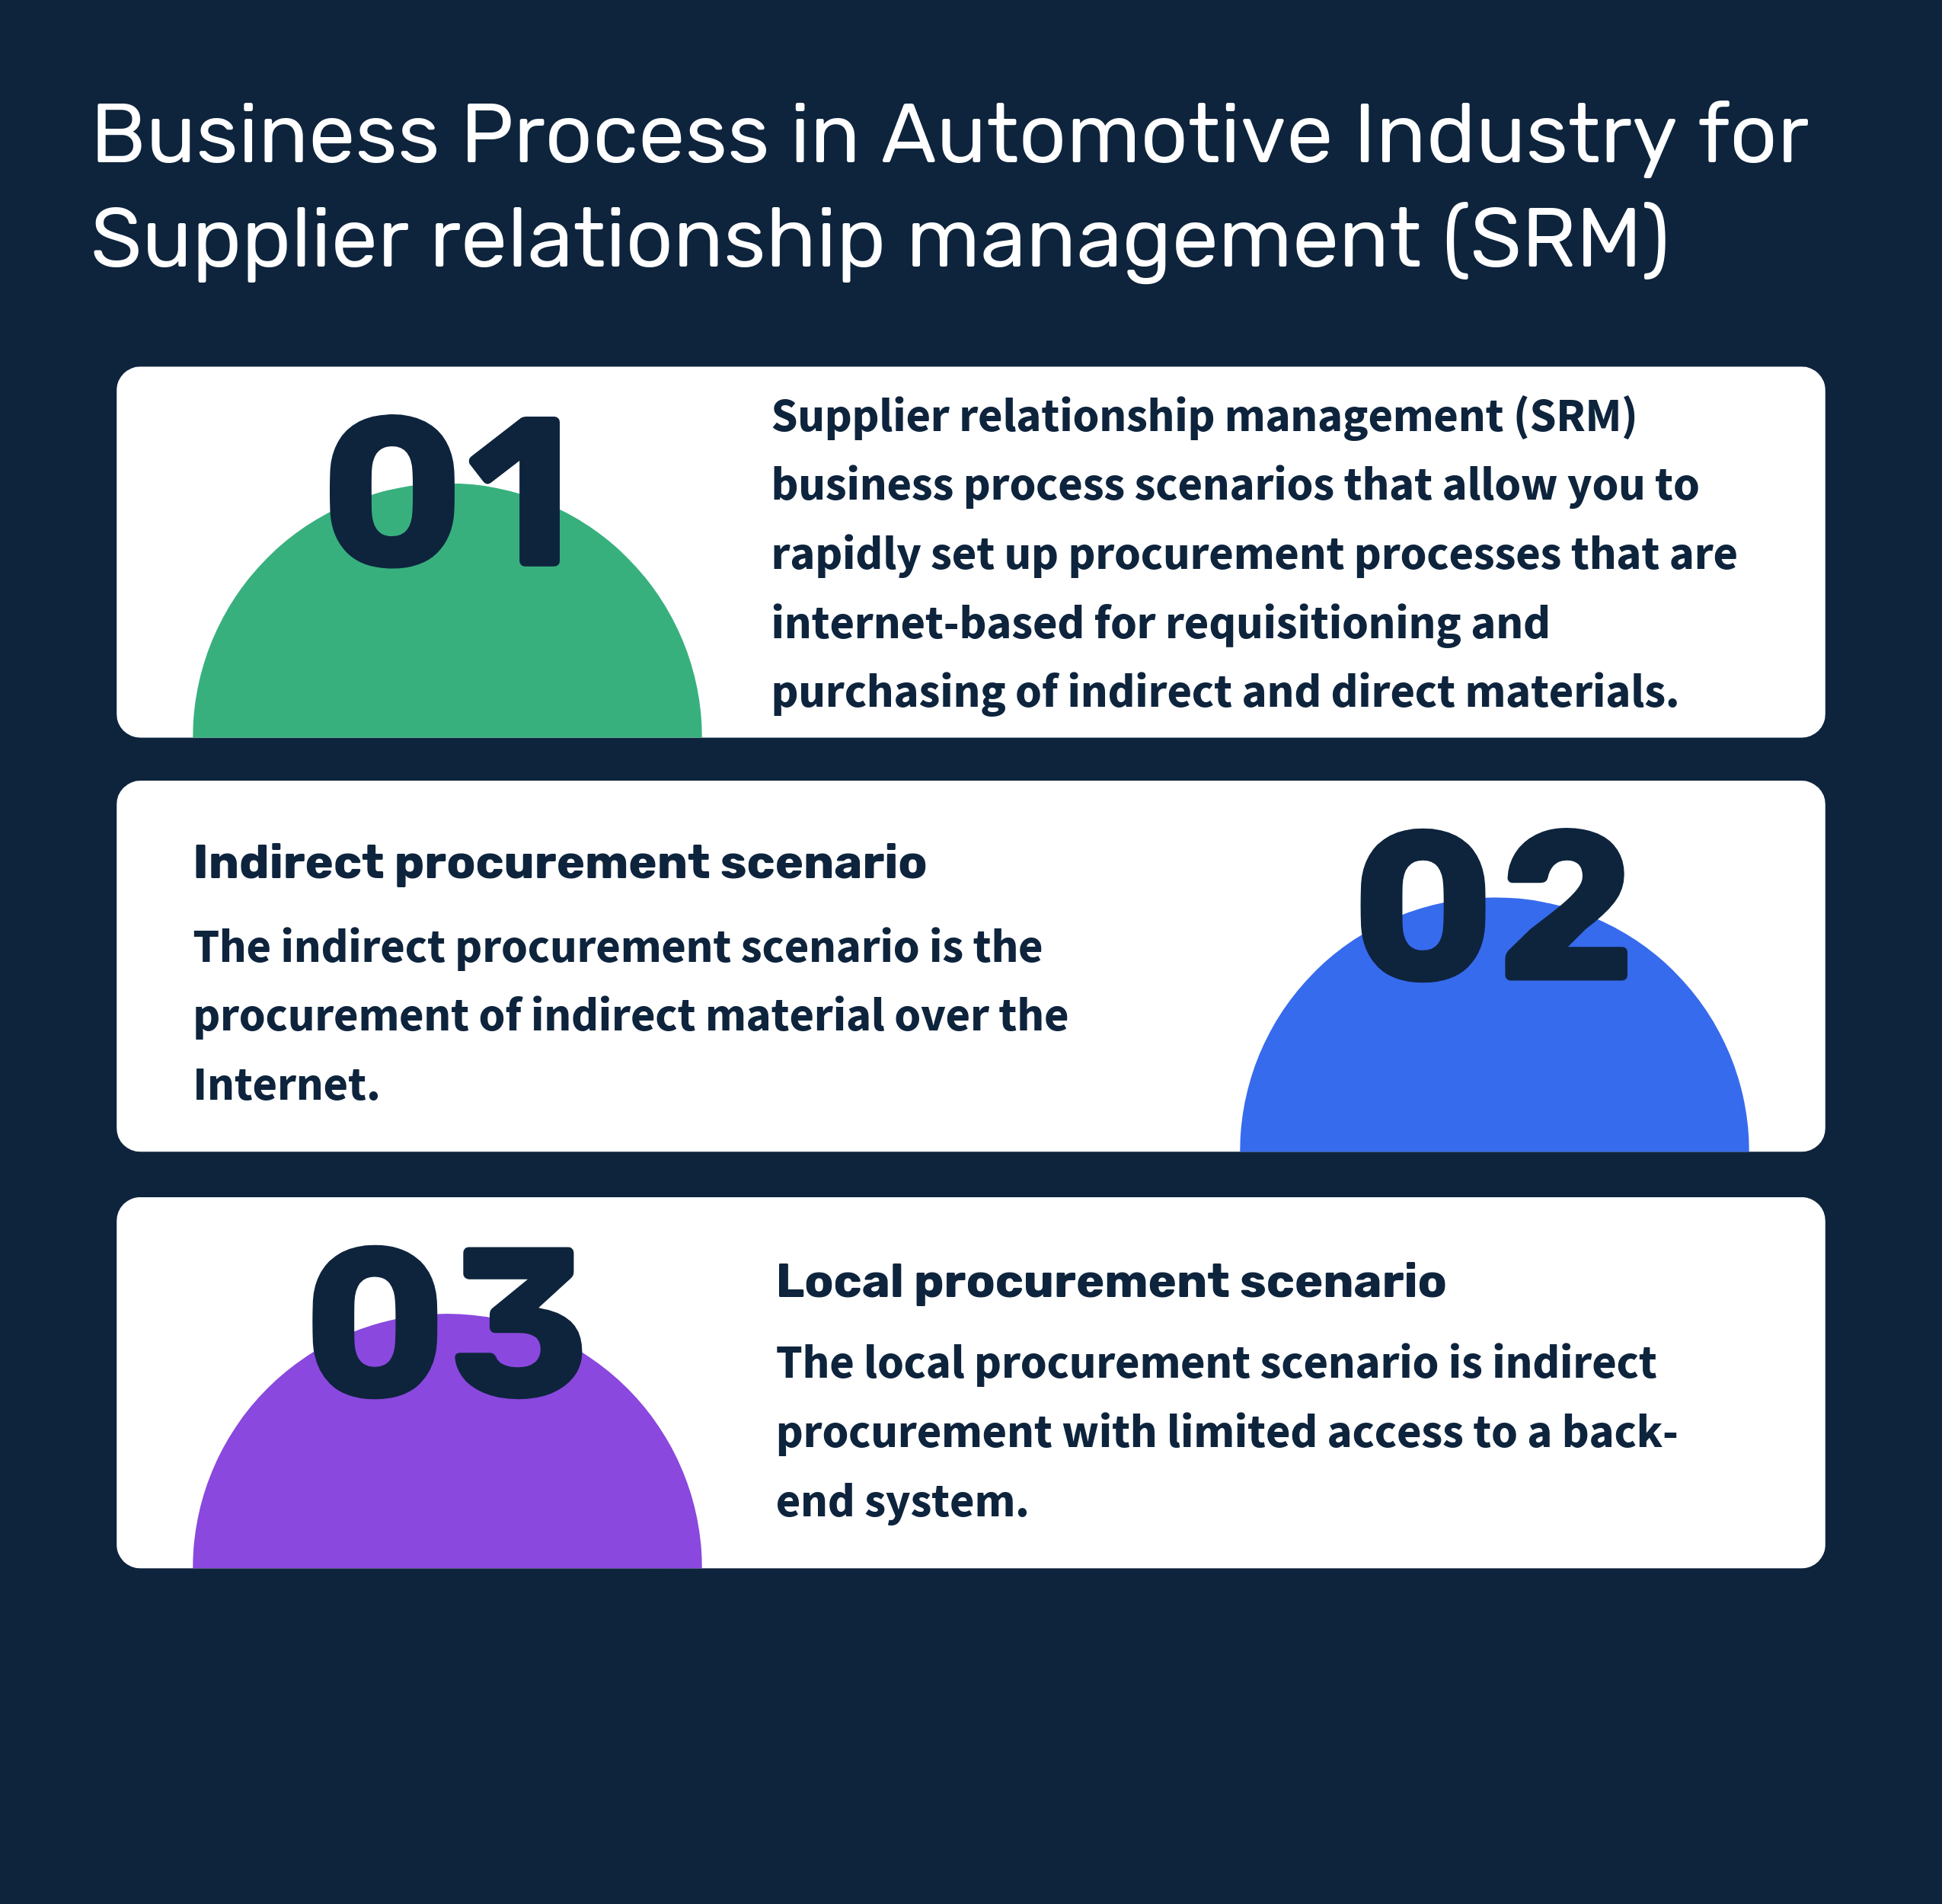 What are the Business Process in Automotive Industry for Supplier relationship management (SRM)